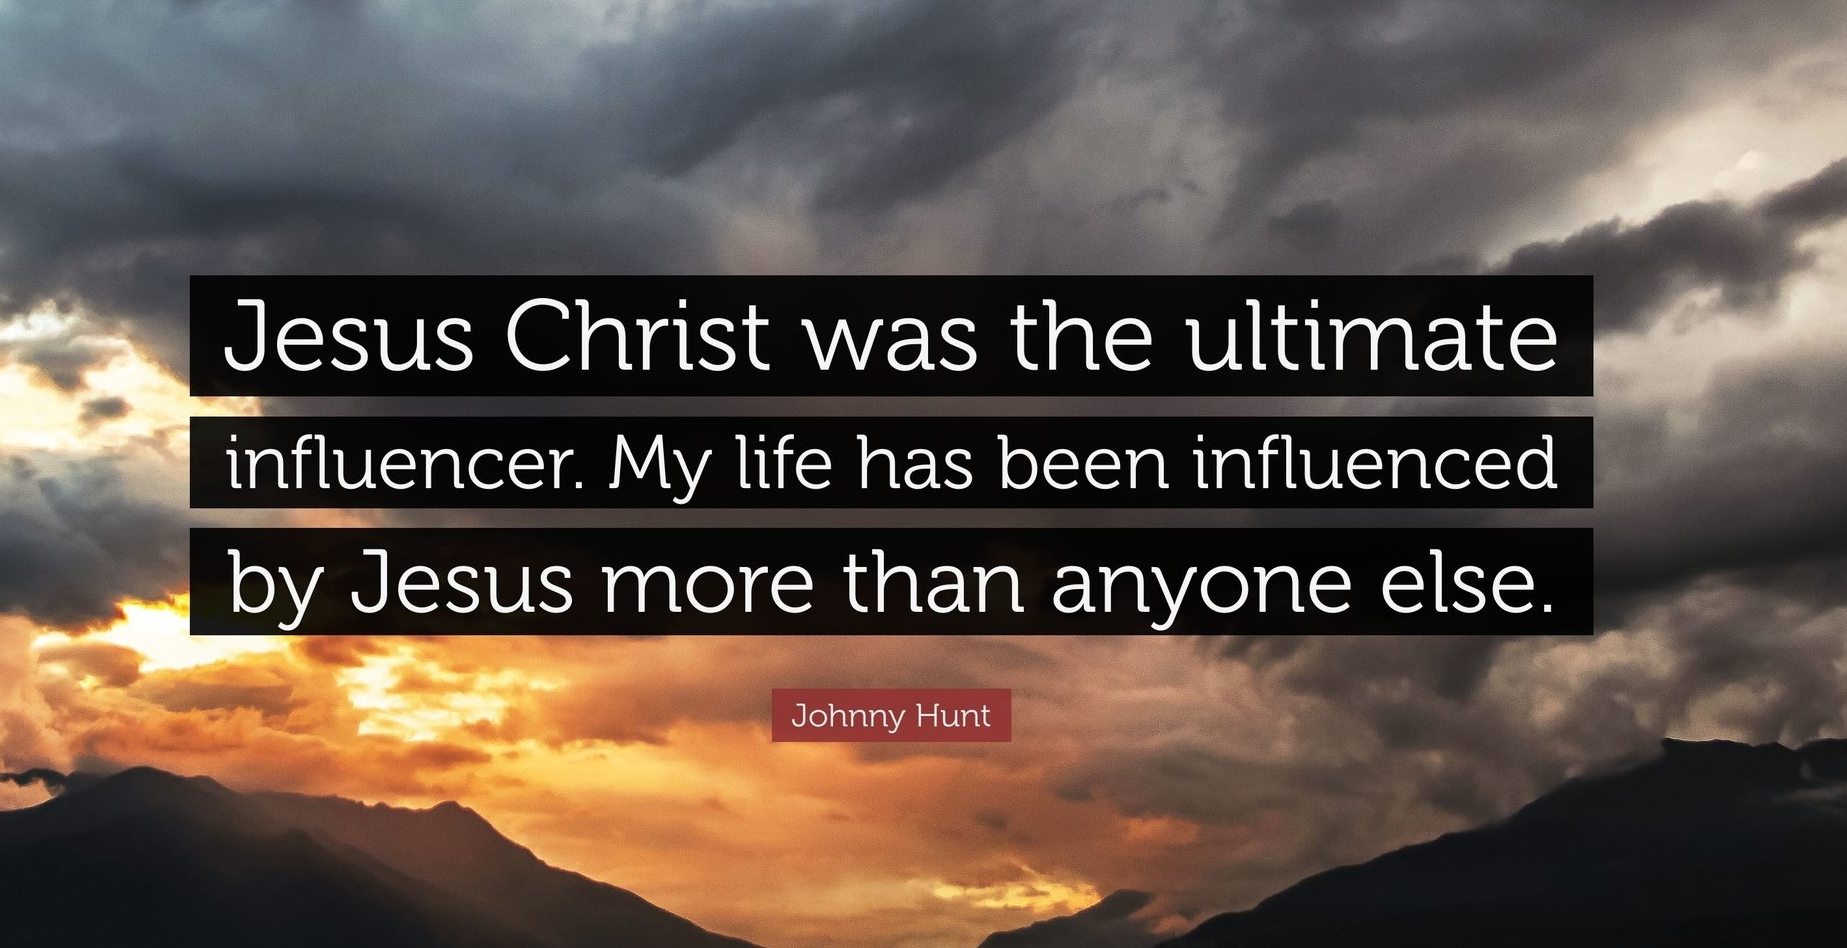 4434866-Johnny-Hunt-Quote-Jesus-Christ-was-the-ultimate-influencer-My-life.jpg